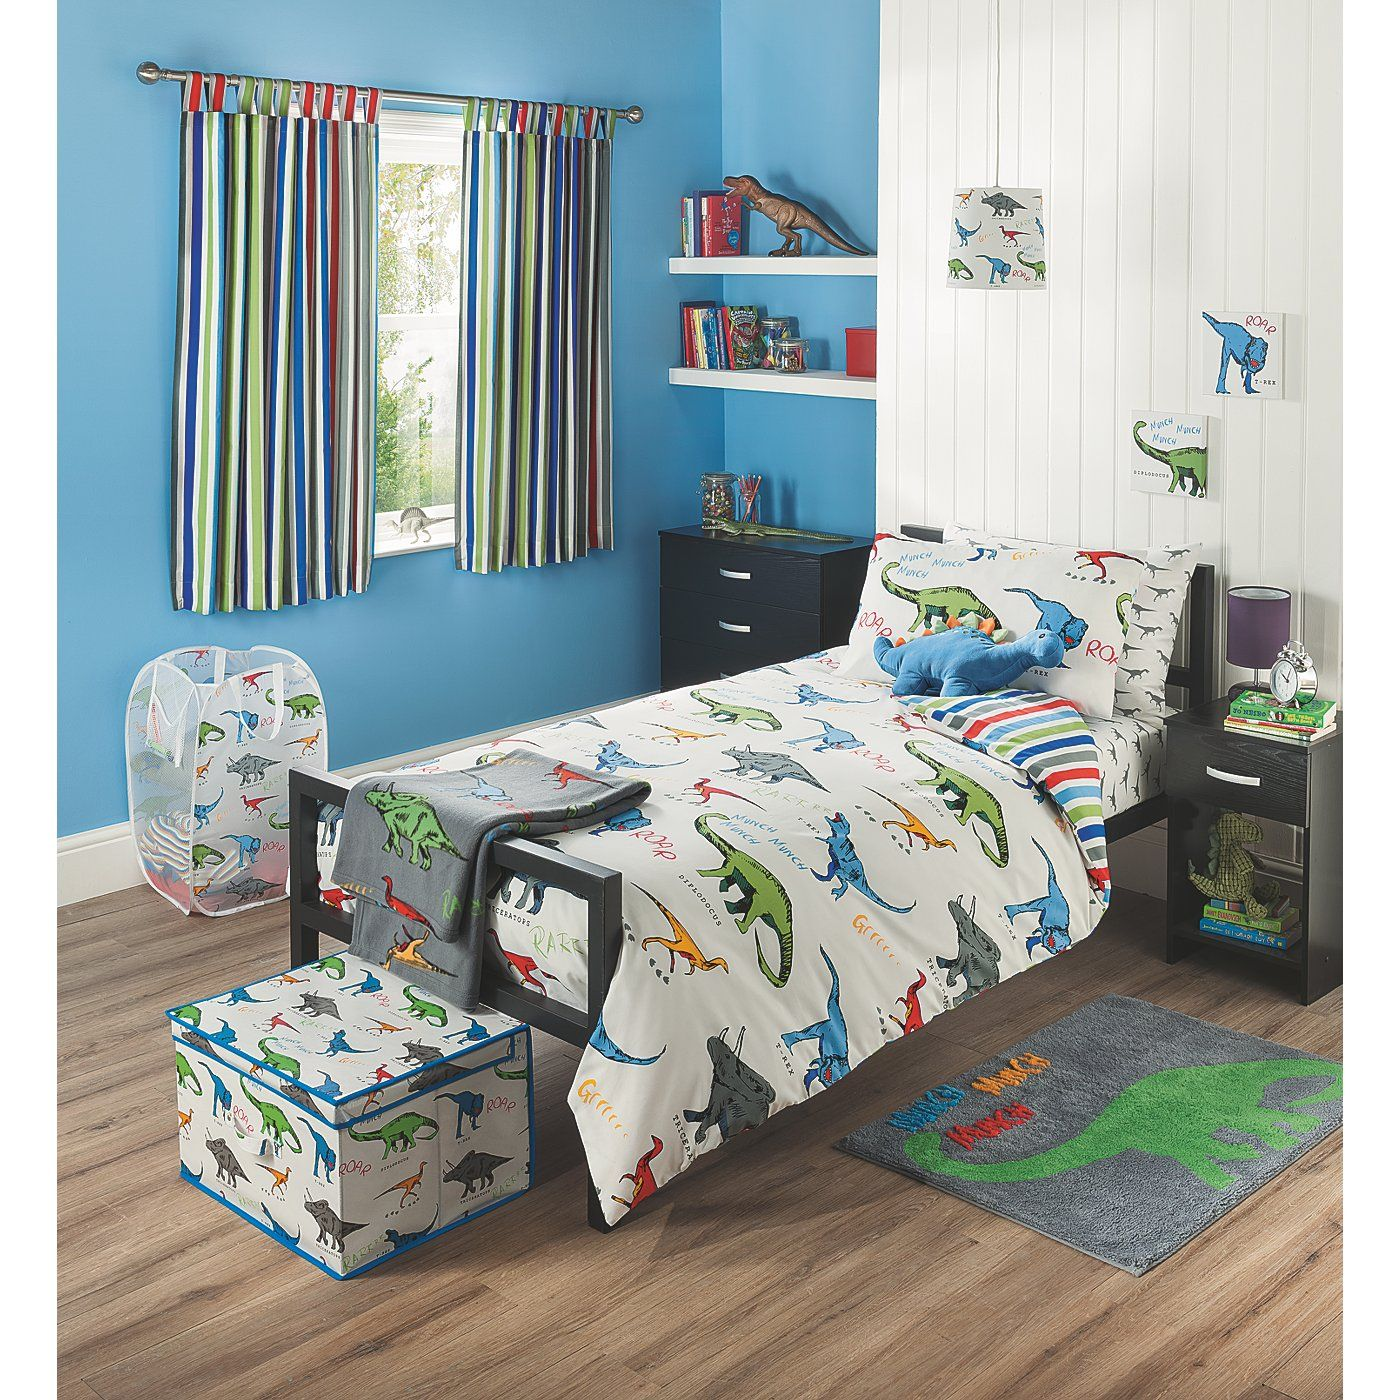 Toddler Boy Bedroom Ideas: Buy George Home Dinosaurs Bedroom Range From Our Bedding